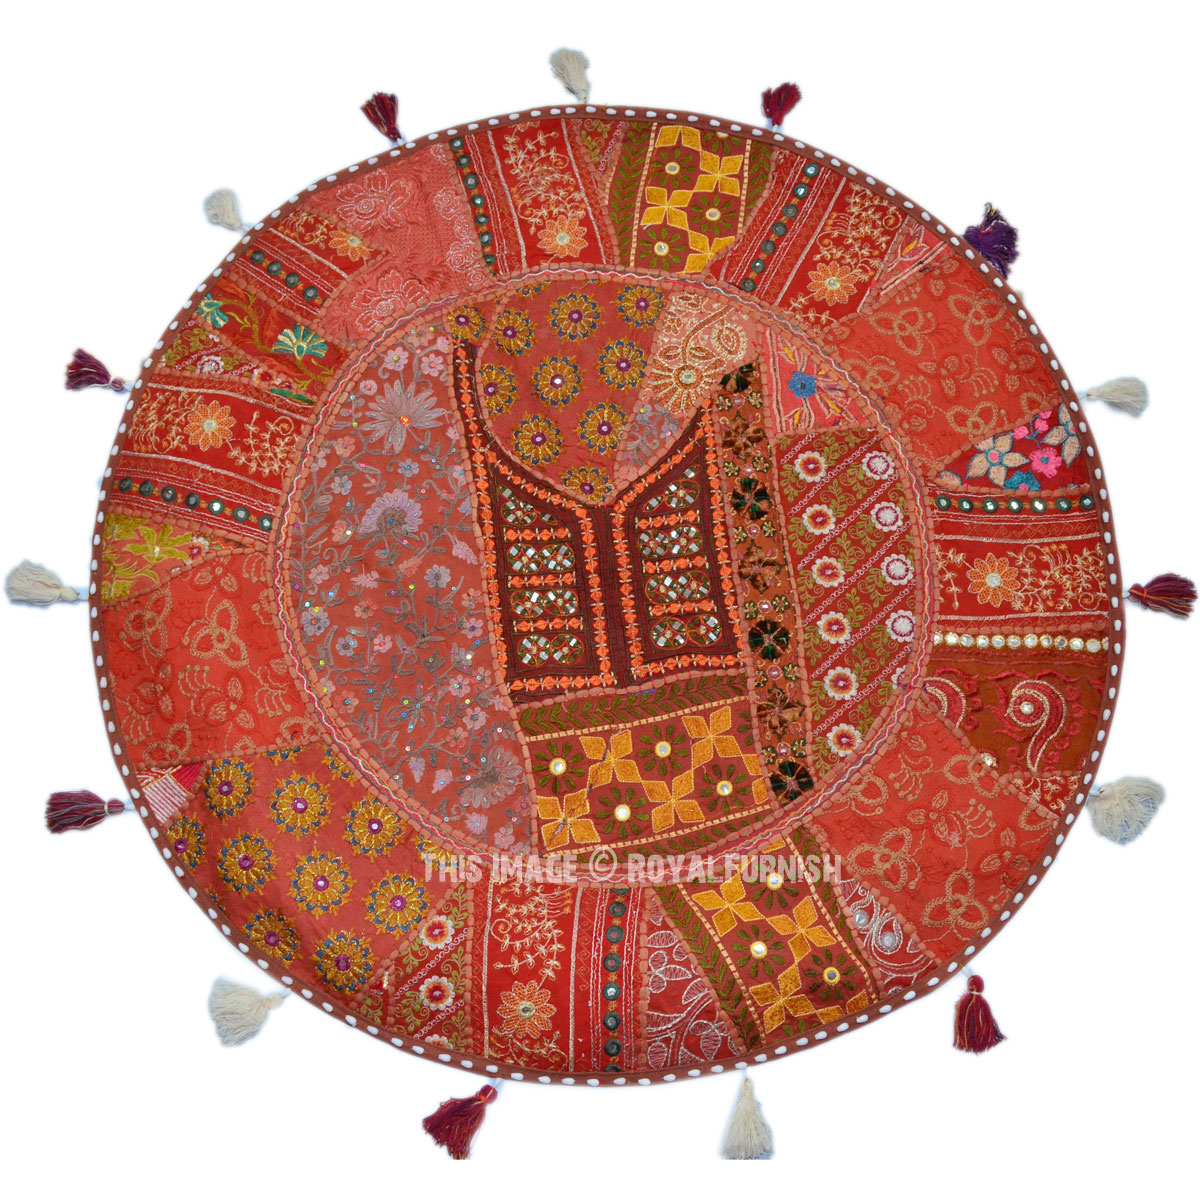 Extra Large Round Floor Pillows : Extra Large Recycled Patchwork Decorative Floor Pillow Case - RoyalFurnish.com